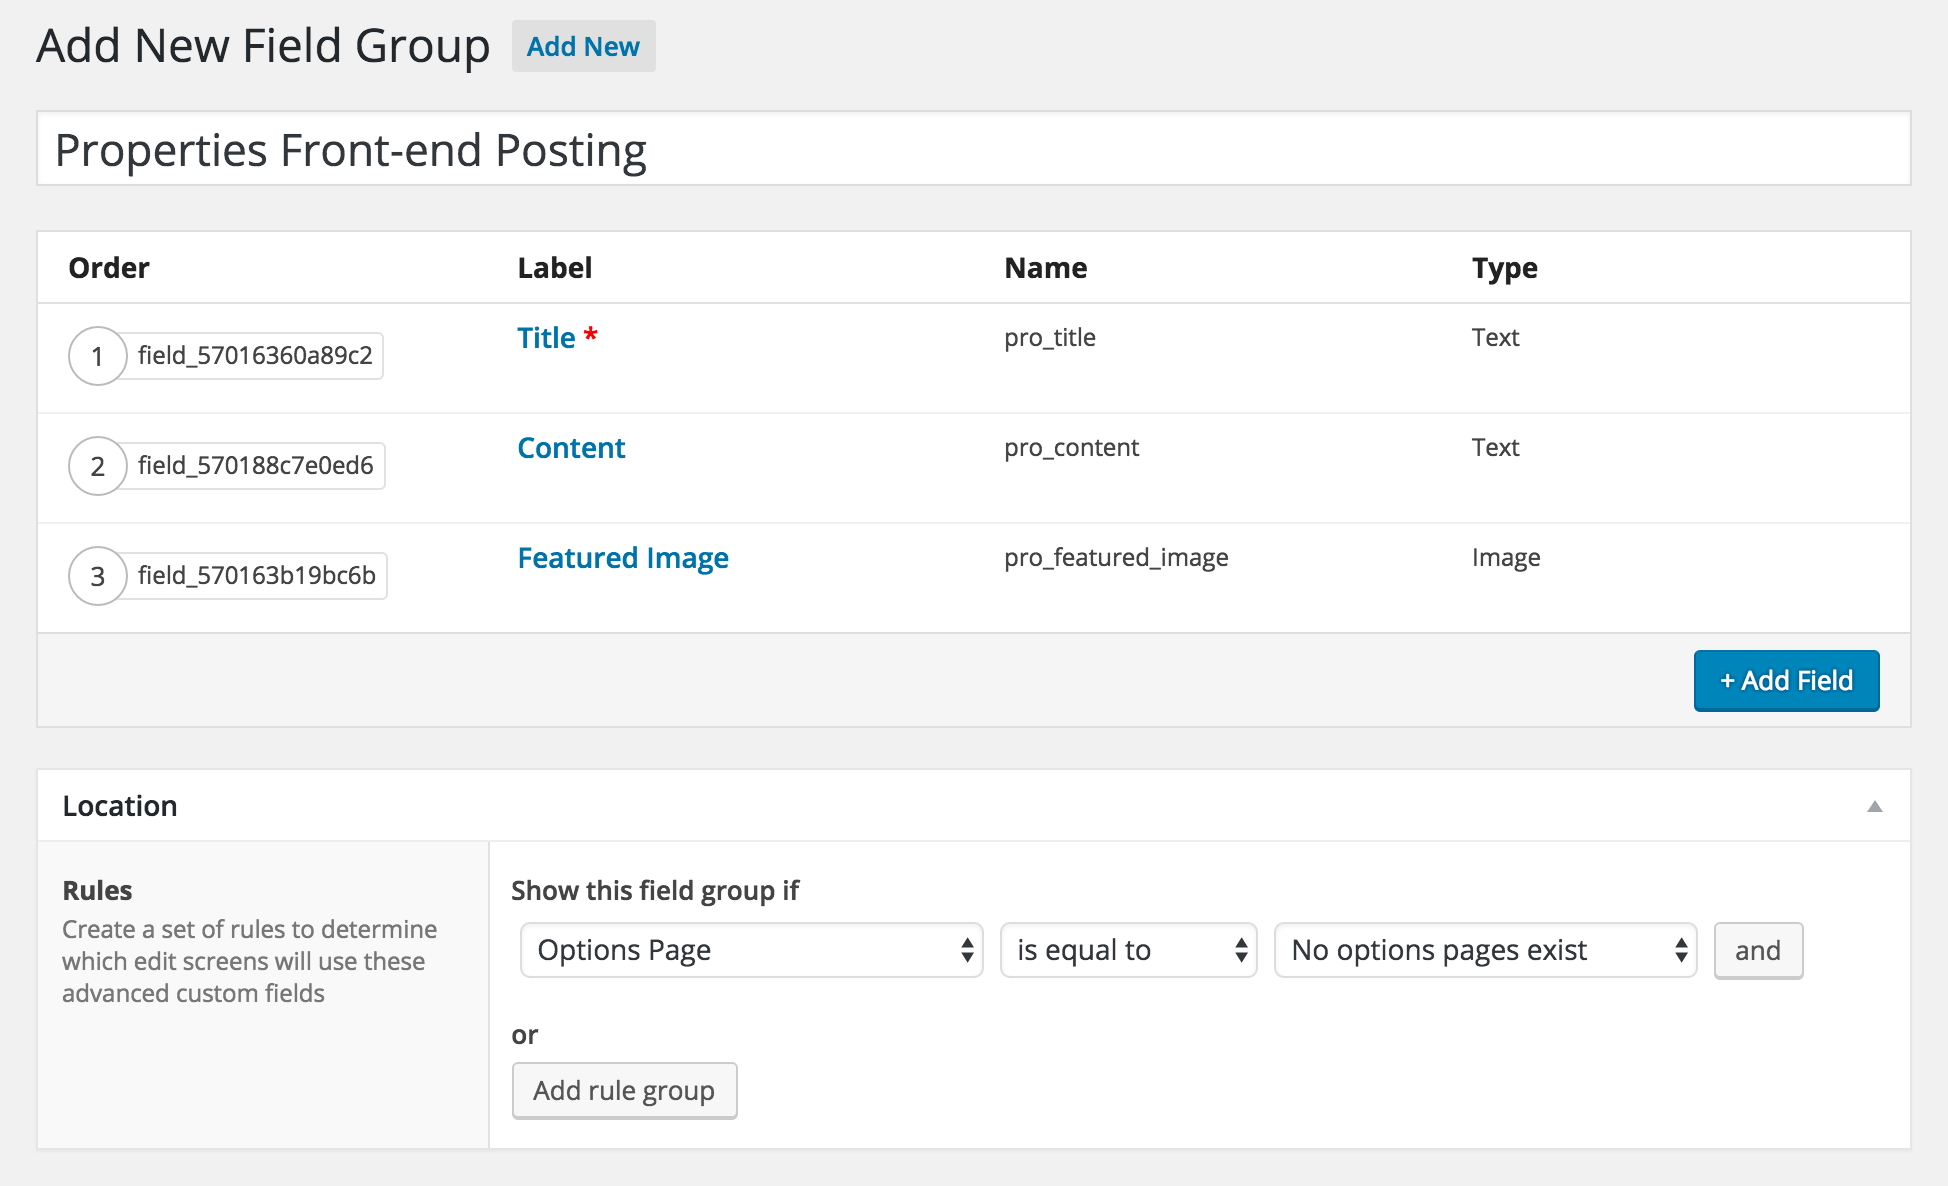 acf-field-group-for-front-end-posting